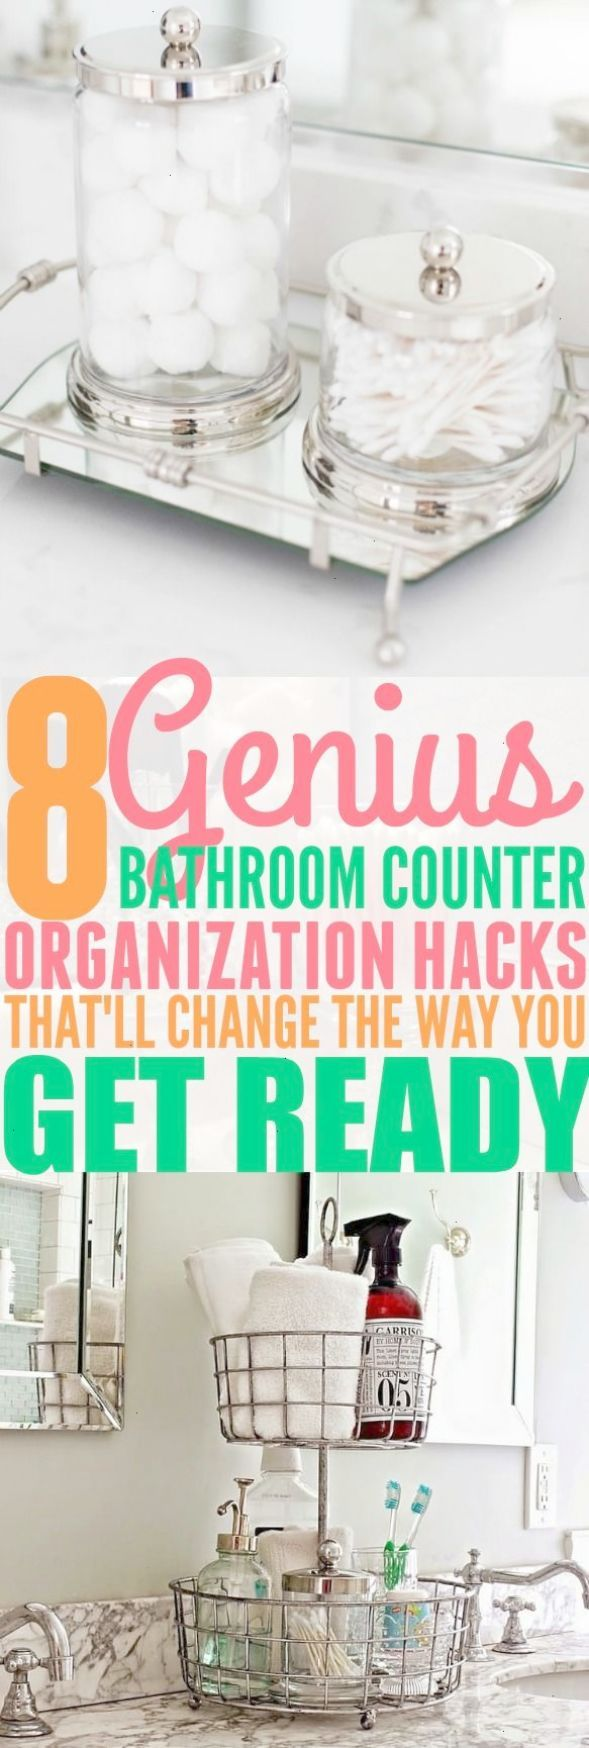 I Absolutely Love These 8 Bathroom Counter Organization Hacks. I Never Have  To Worry About